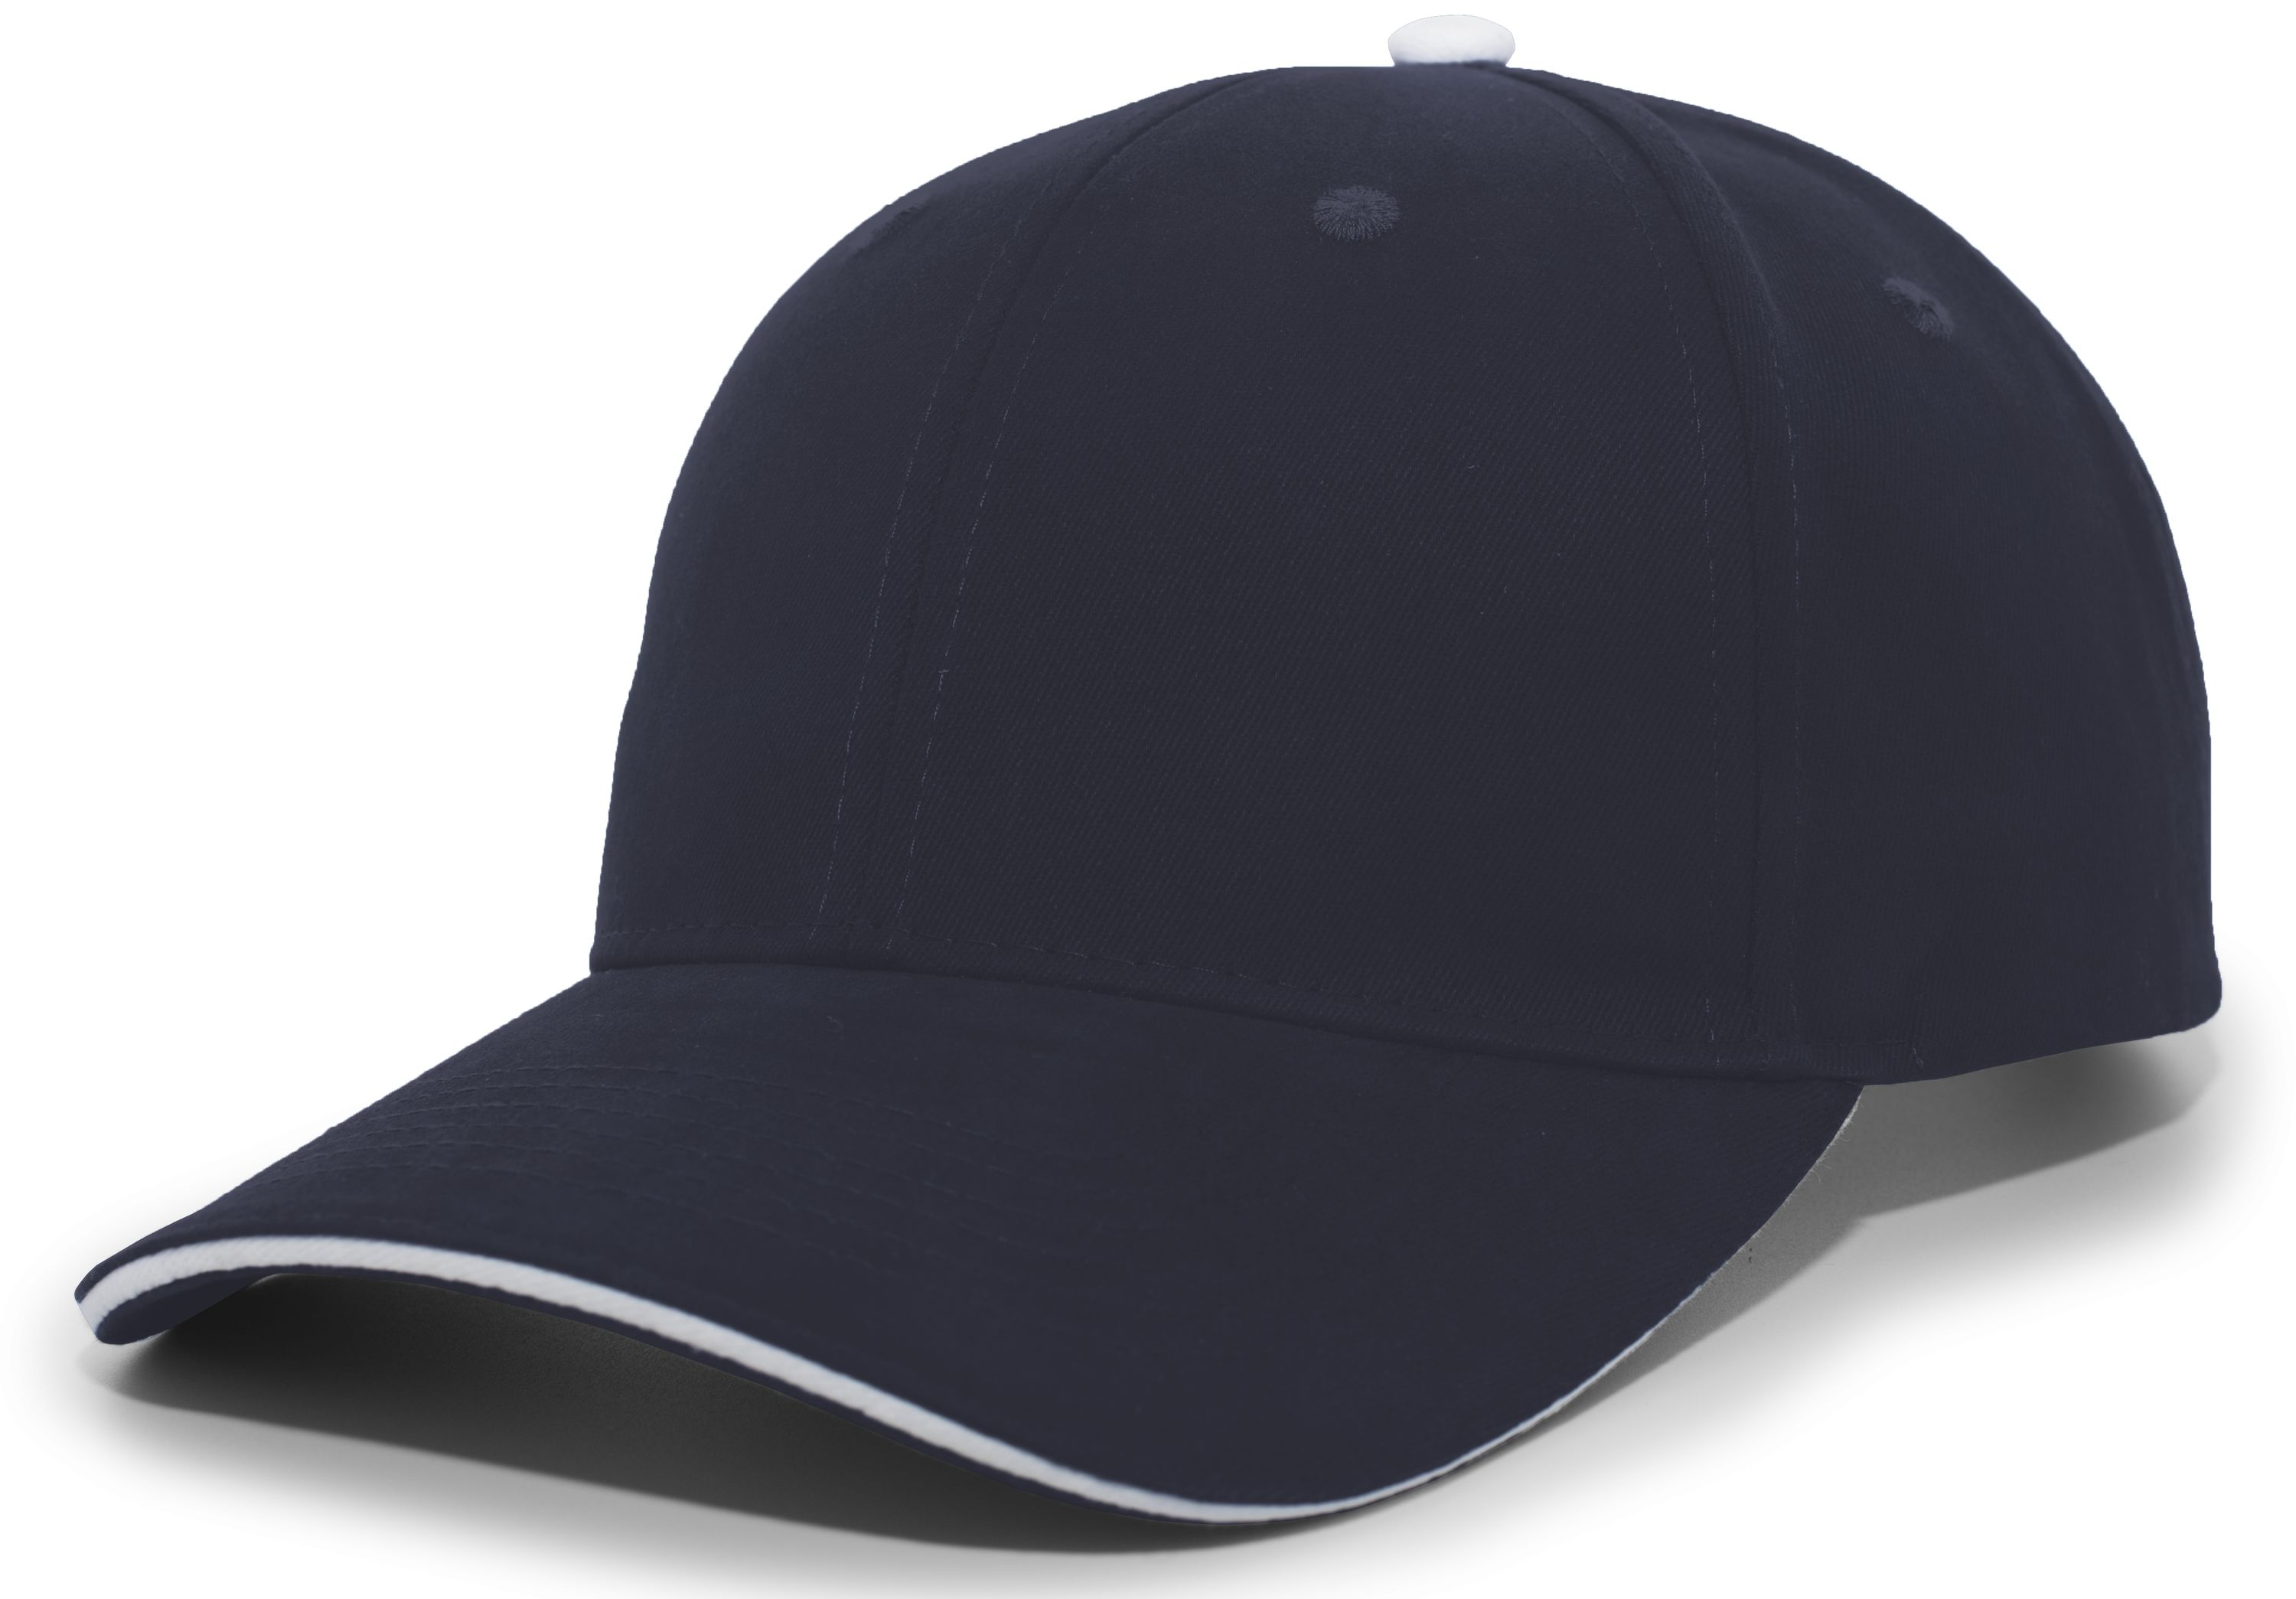 Brushed Twill Cap With Sandwich Bill - NAVY/WHITE